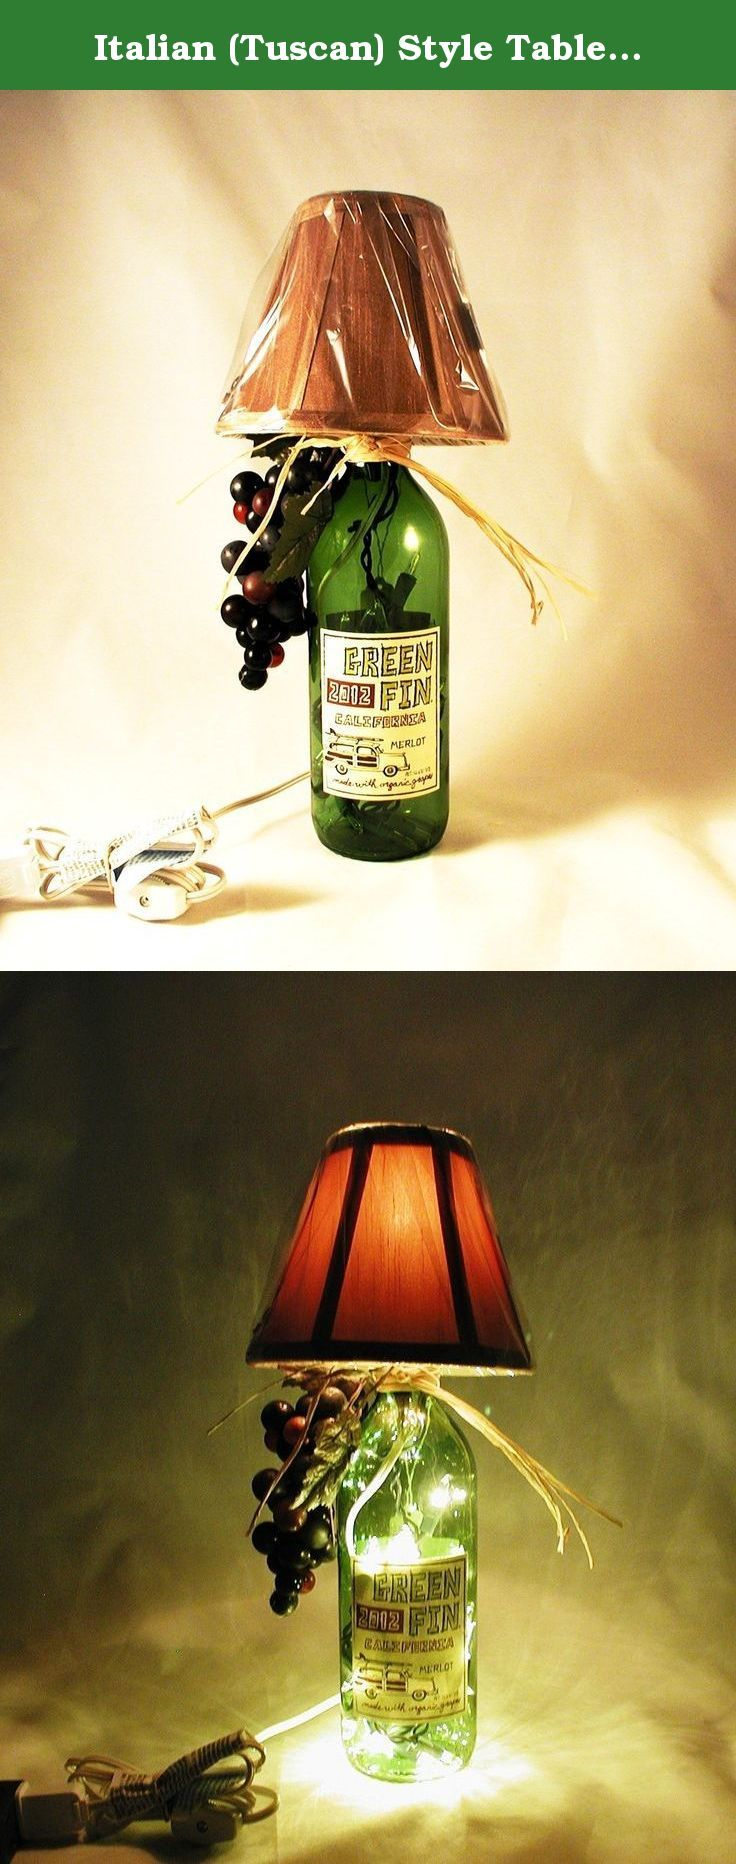 "Italian (Tuscan) Style Table Lamp Crafted From a Recycled Green 2012 Fin Merlot Wine Bottle. Shipping is included. Very attractive Italian style wine bottle table lamp made with a recycled Green Fin 2012 Merlot wine bottle. The bottle is Kelly green and the shade is tan. Lamp is approximately 14"" tall and approximately 10 "" wide (including the raffia). It has a nite light under the shade and mini lights inside the bottle. Comes with a switched cord for convenience. The lamp shade and bulb..."